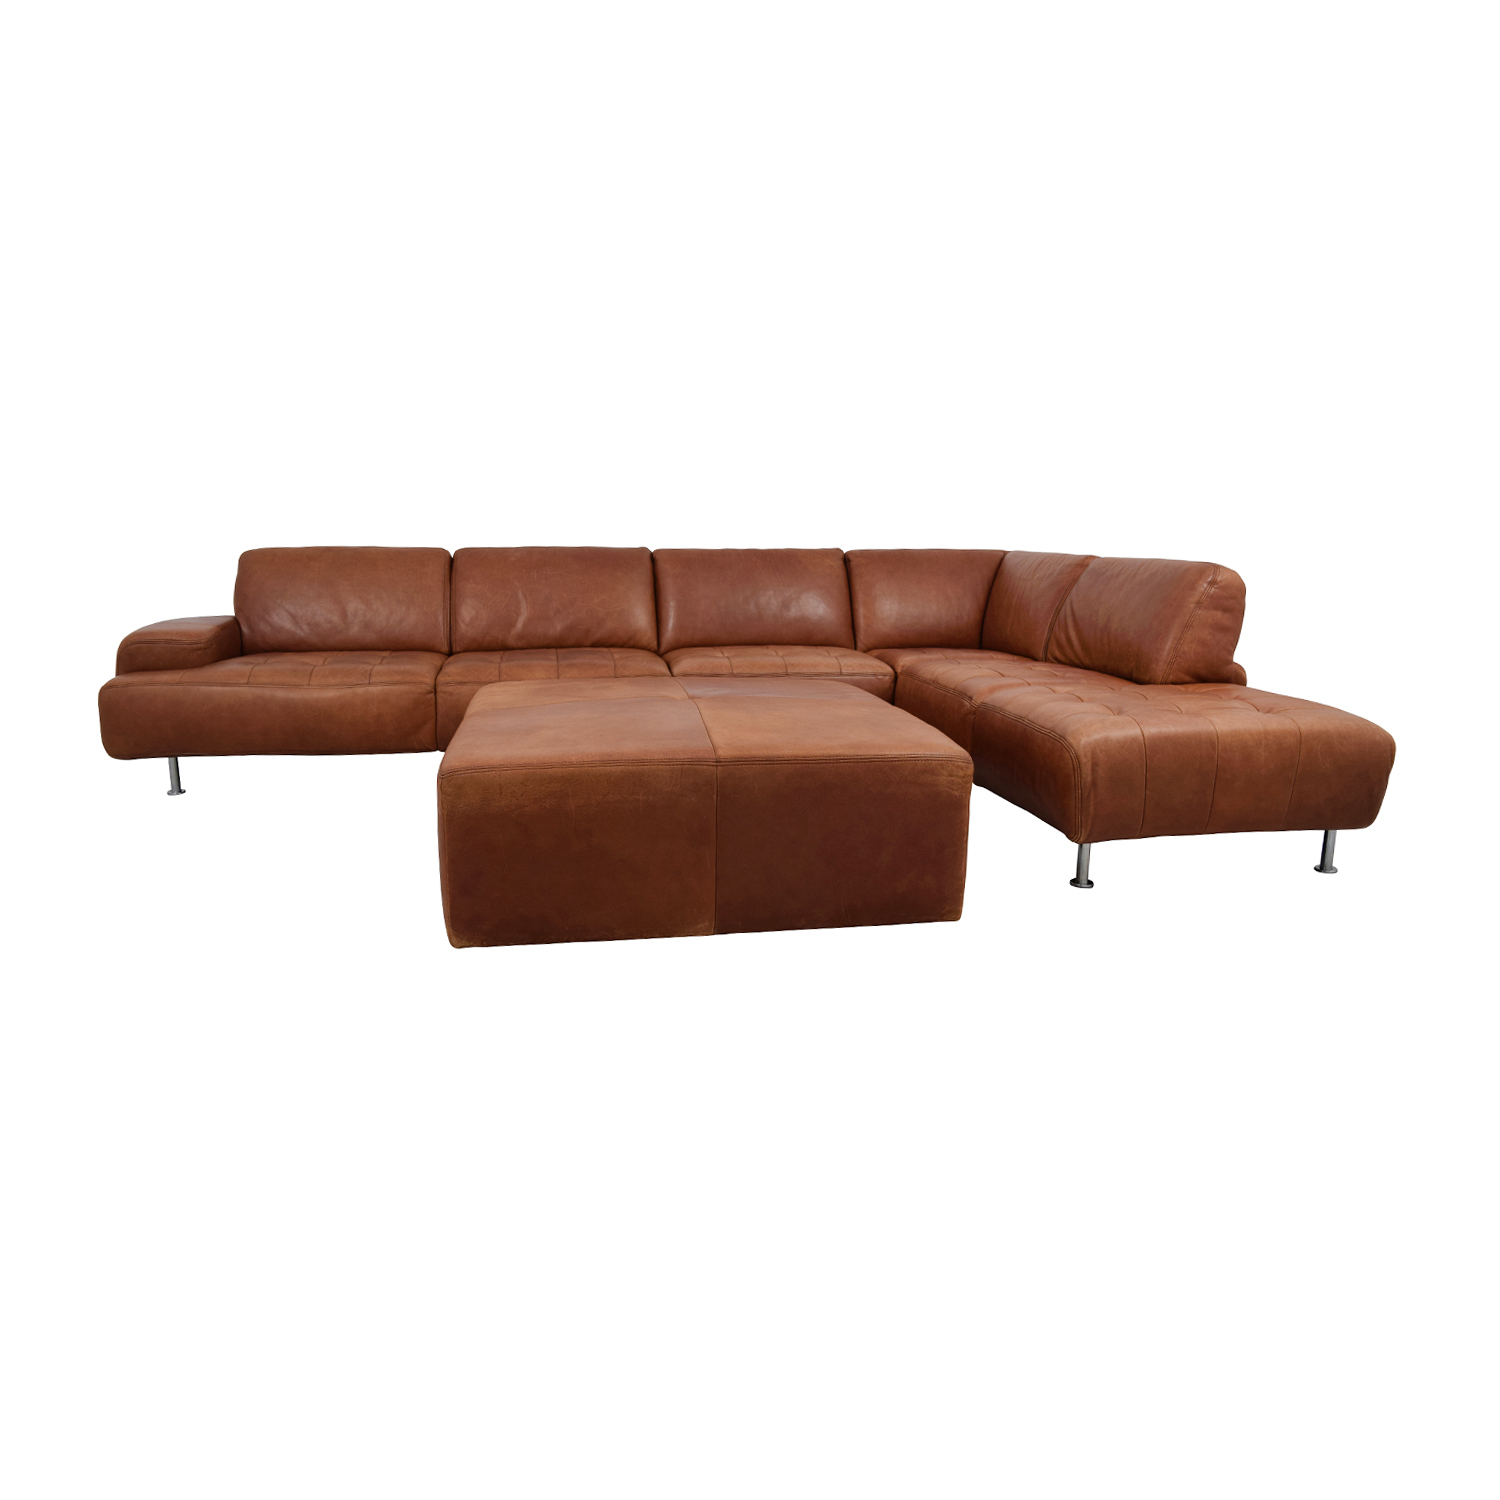 W. Schillig W. Schillig Leather Sectional with Ottoman used